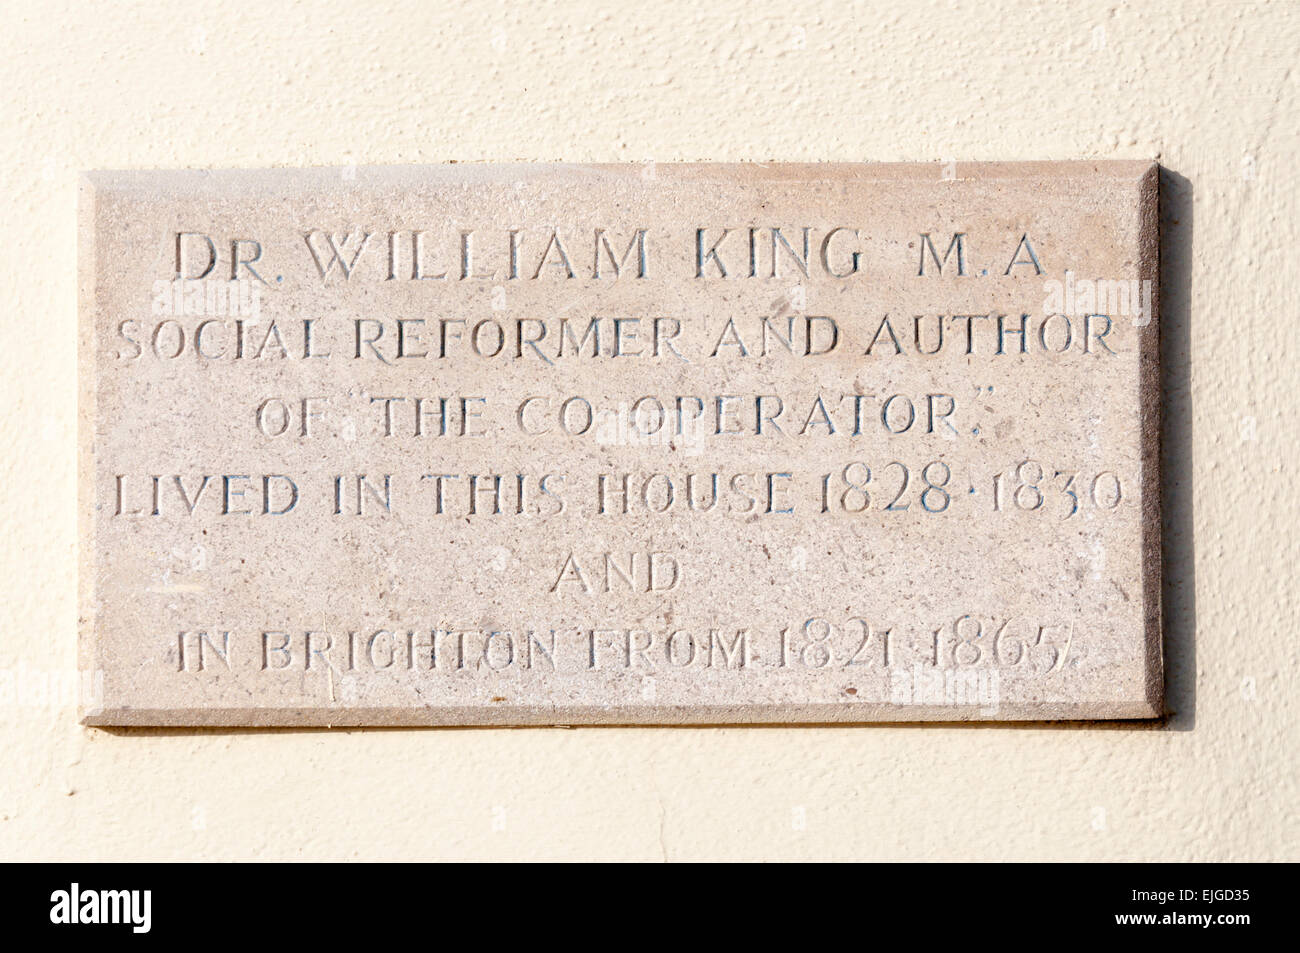 Plaque on 2 Regency Square, Brighton commemorates the social reformer and author, Dr William King. - Stock Image